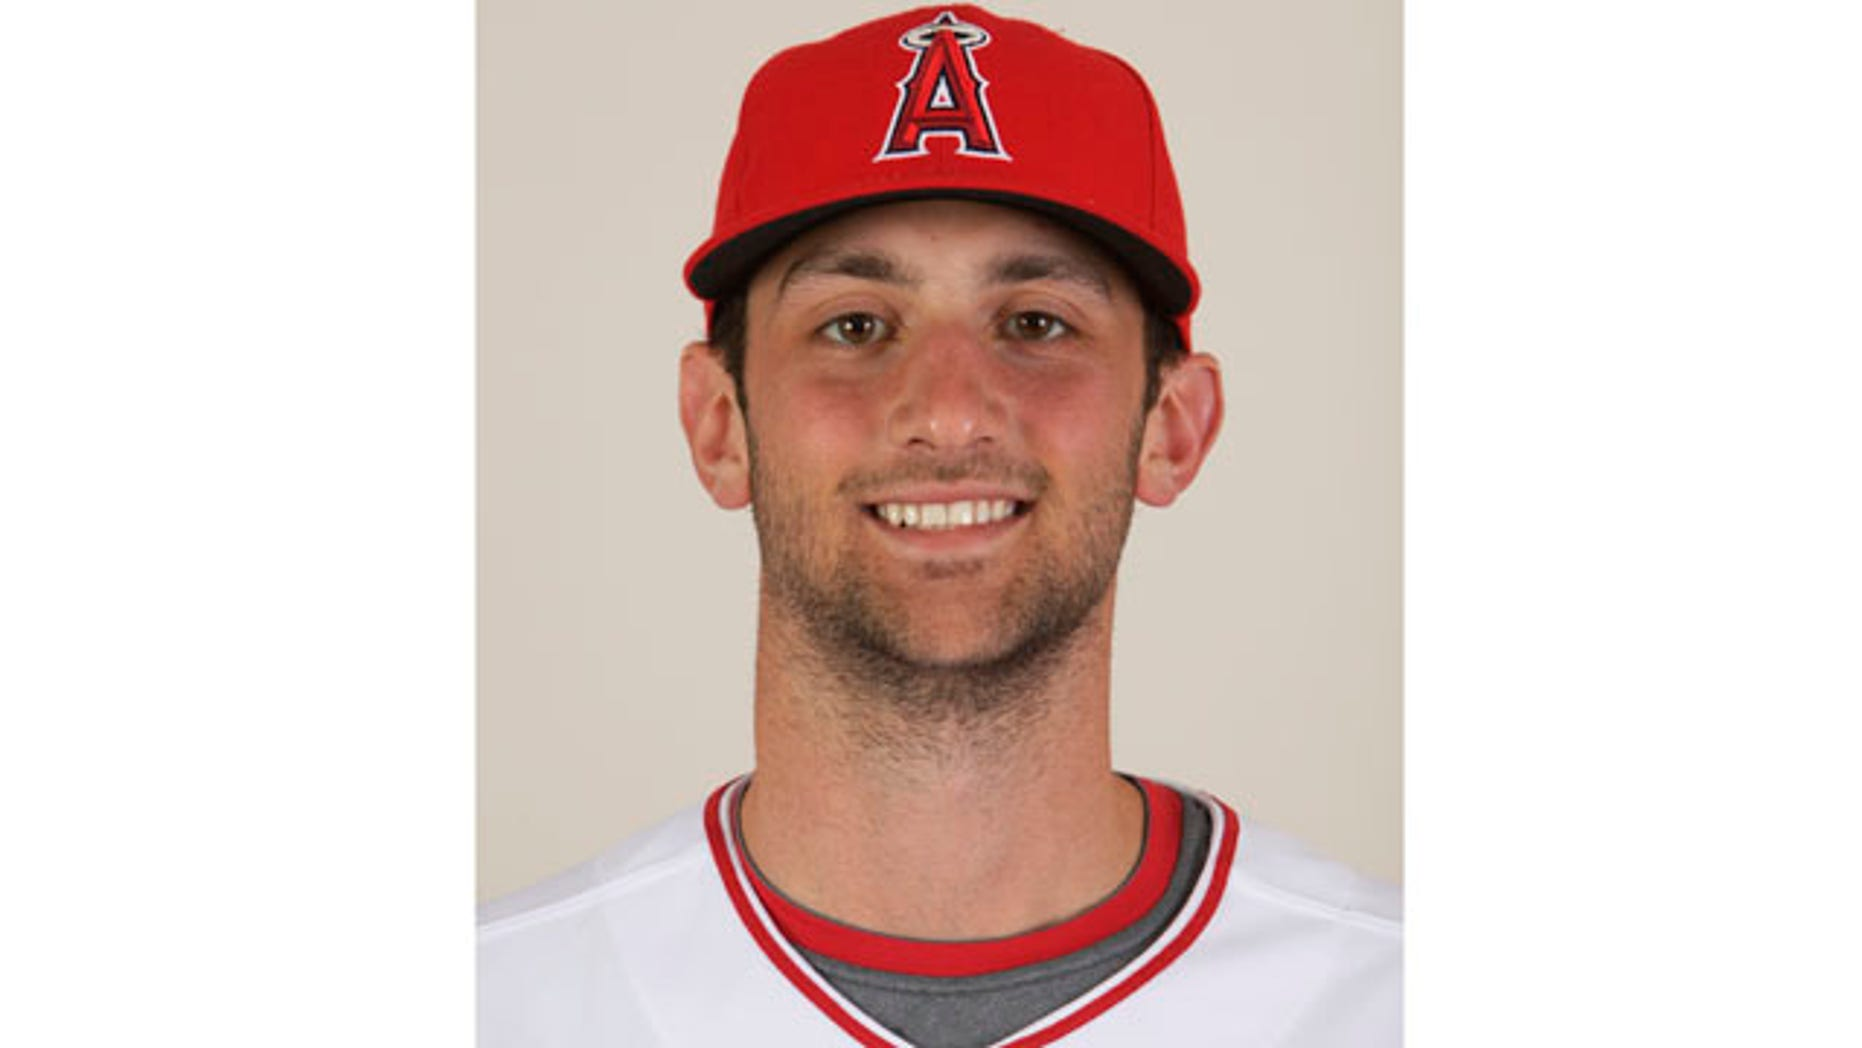 FILE - In a Feb. 25, 2009, file photo, then-Los Angeles Angels pitcher Nick Adenhart poses for a photo in Tempe, Ariz.